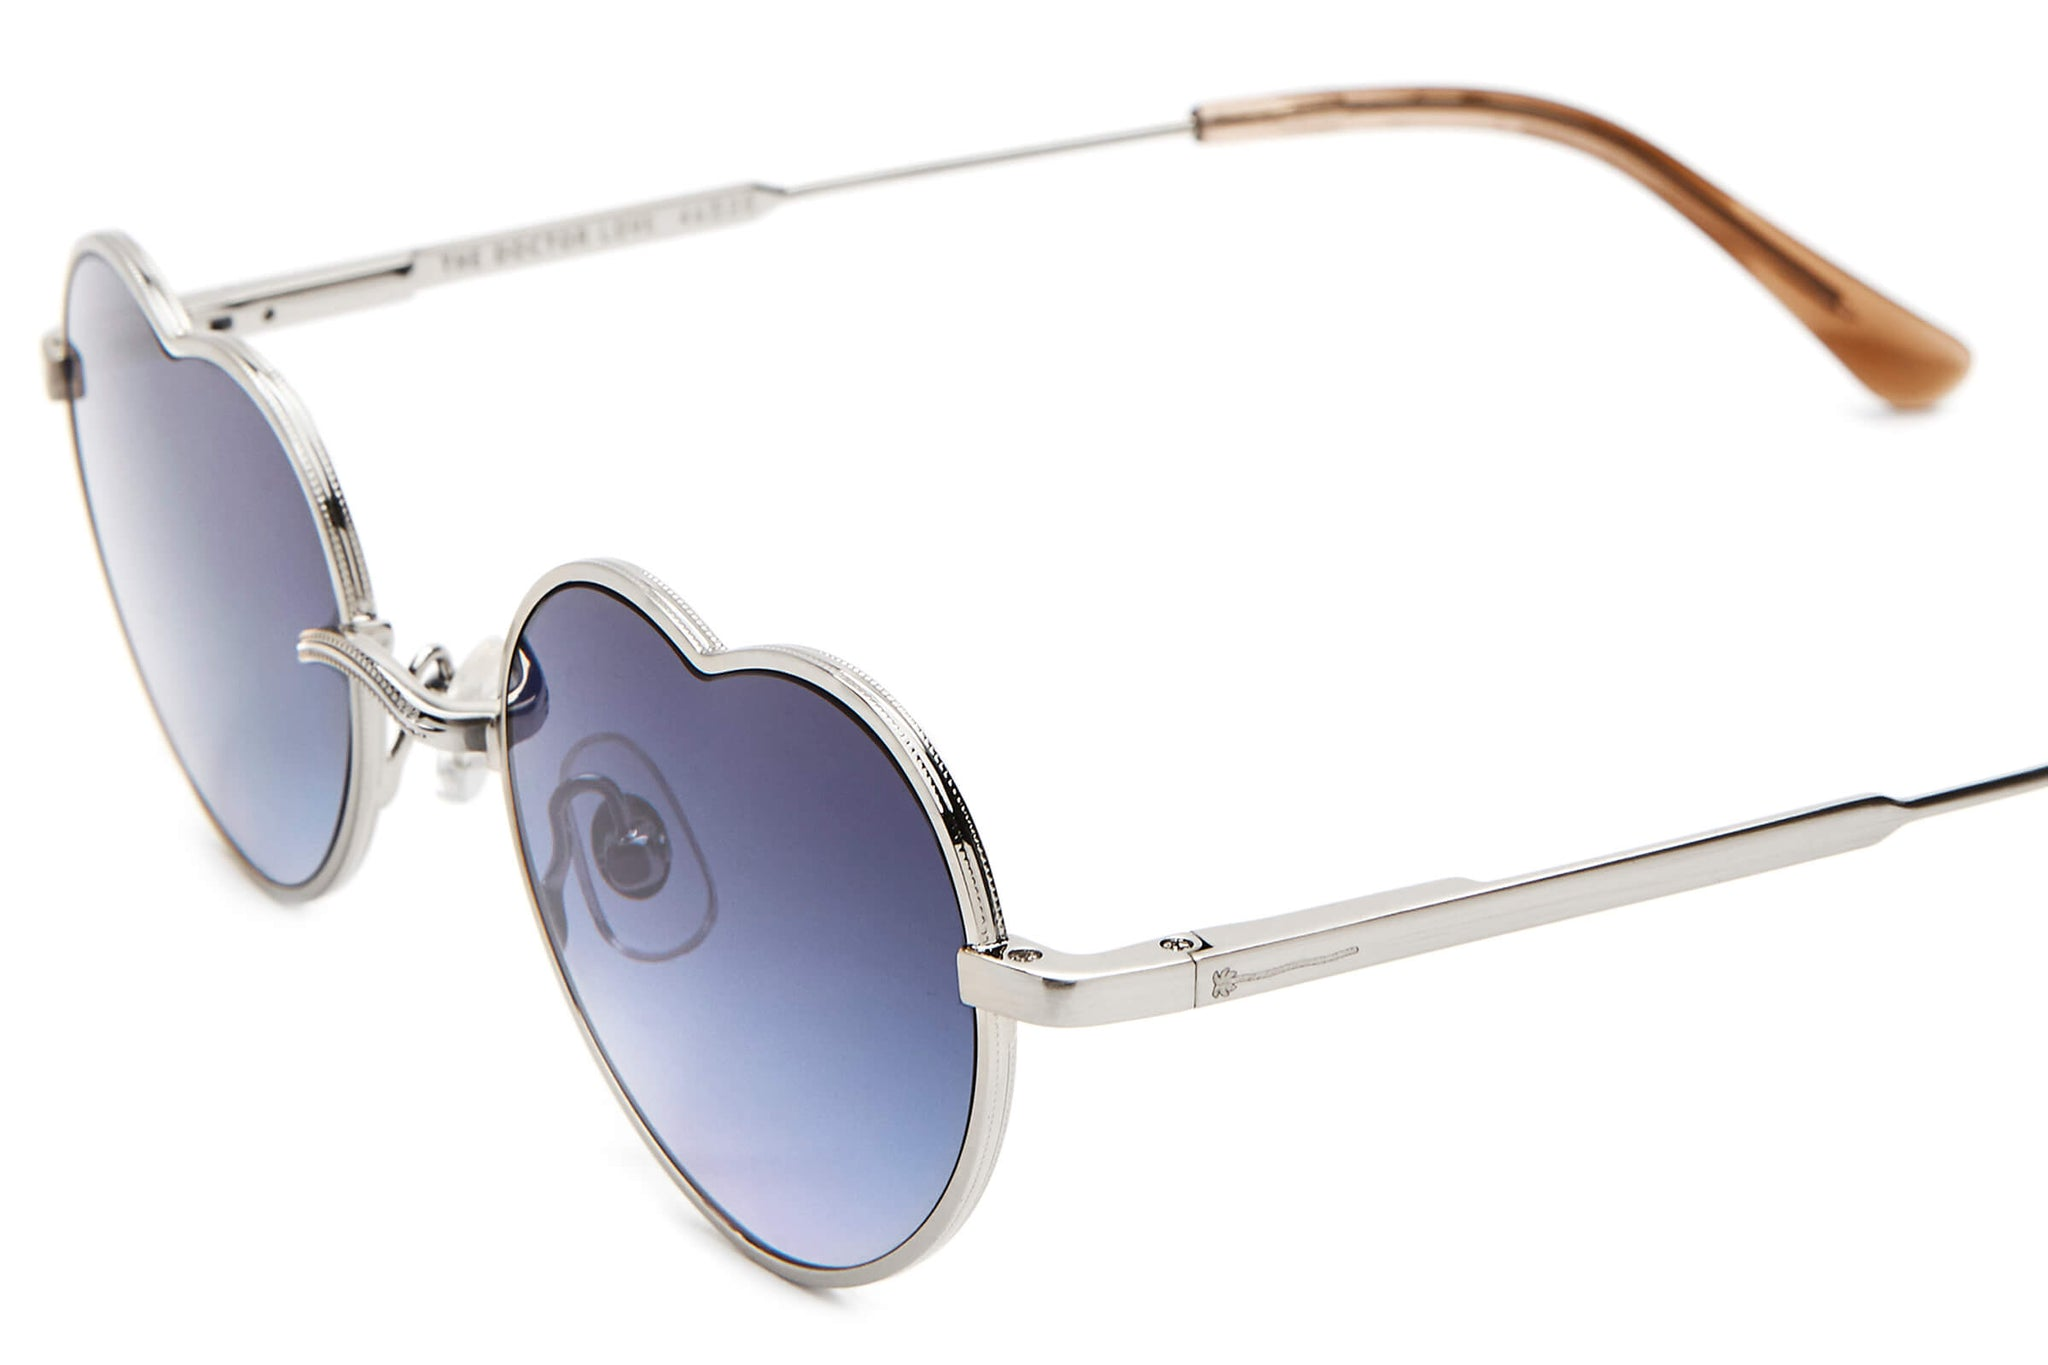 The Doctor Love - Brushed Silver & Dust Demi Tortoise - / Sky Blue Gradient - Sunglasses